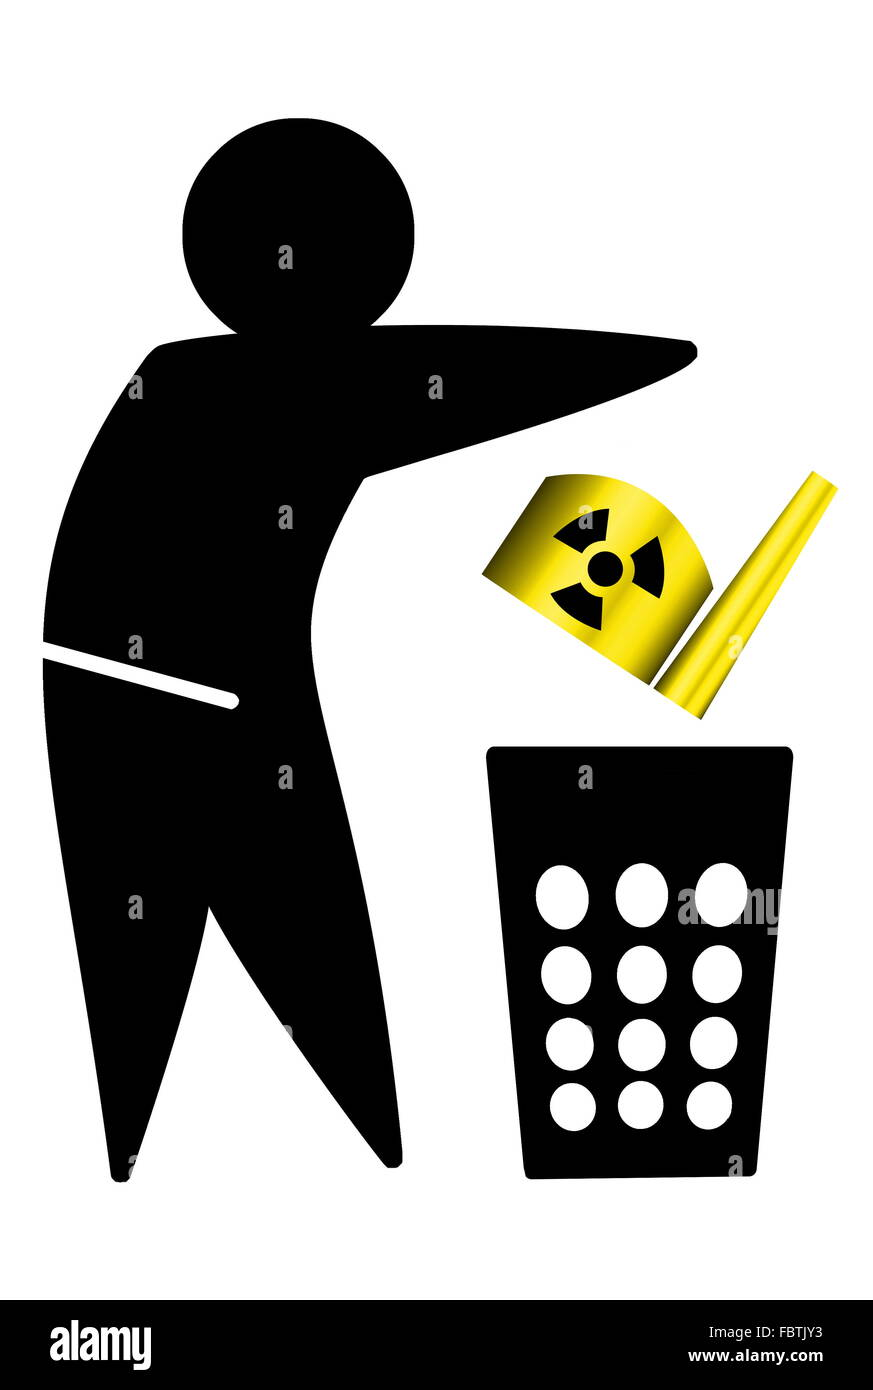 nuclear waste - Stock Image